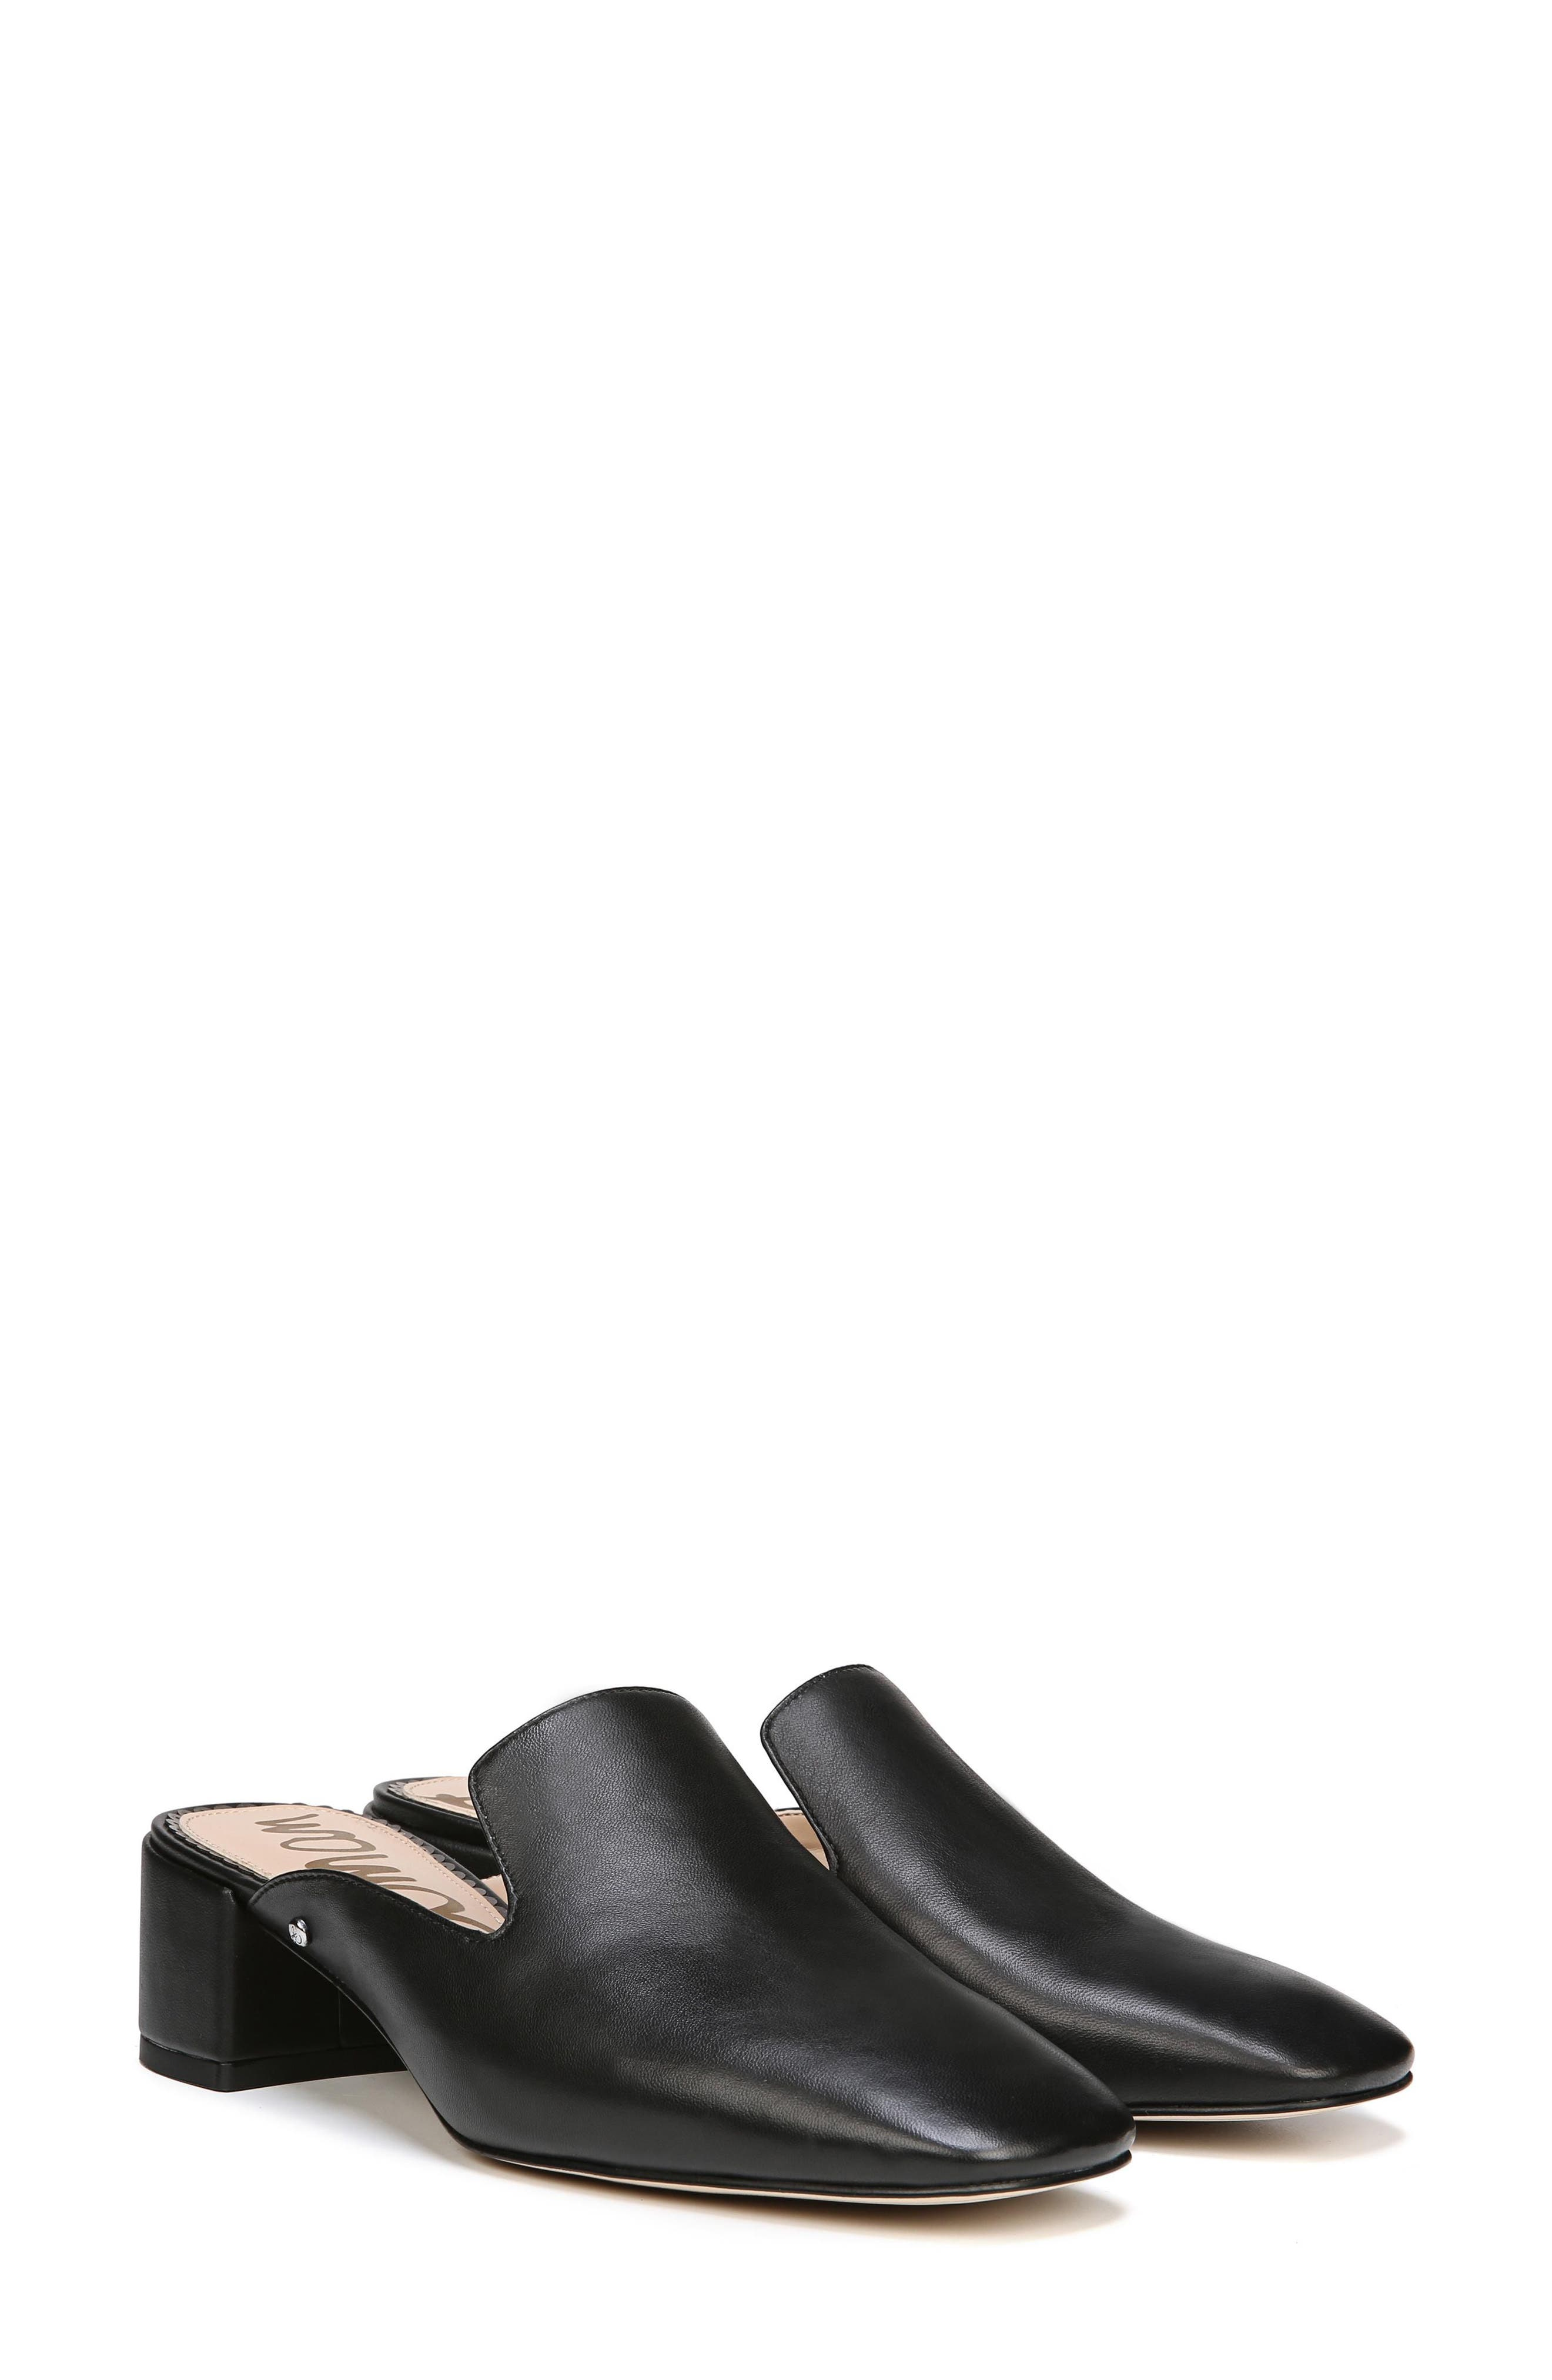 Adair Loafer Mule,                             Alternate thumbnail 8, color,                             BLACK LEATHER